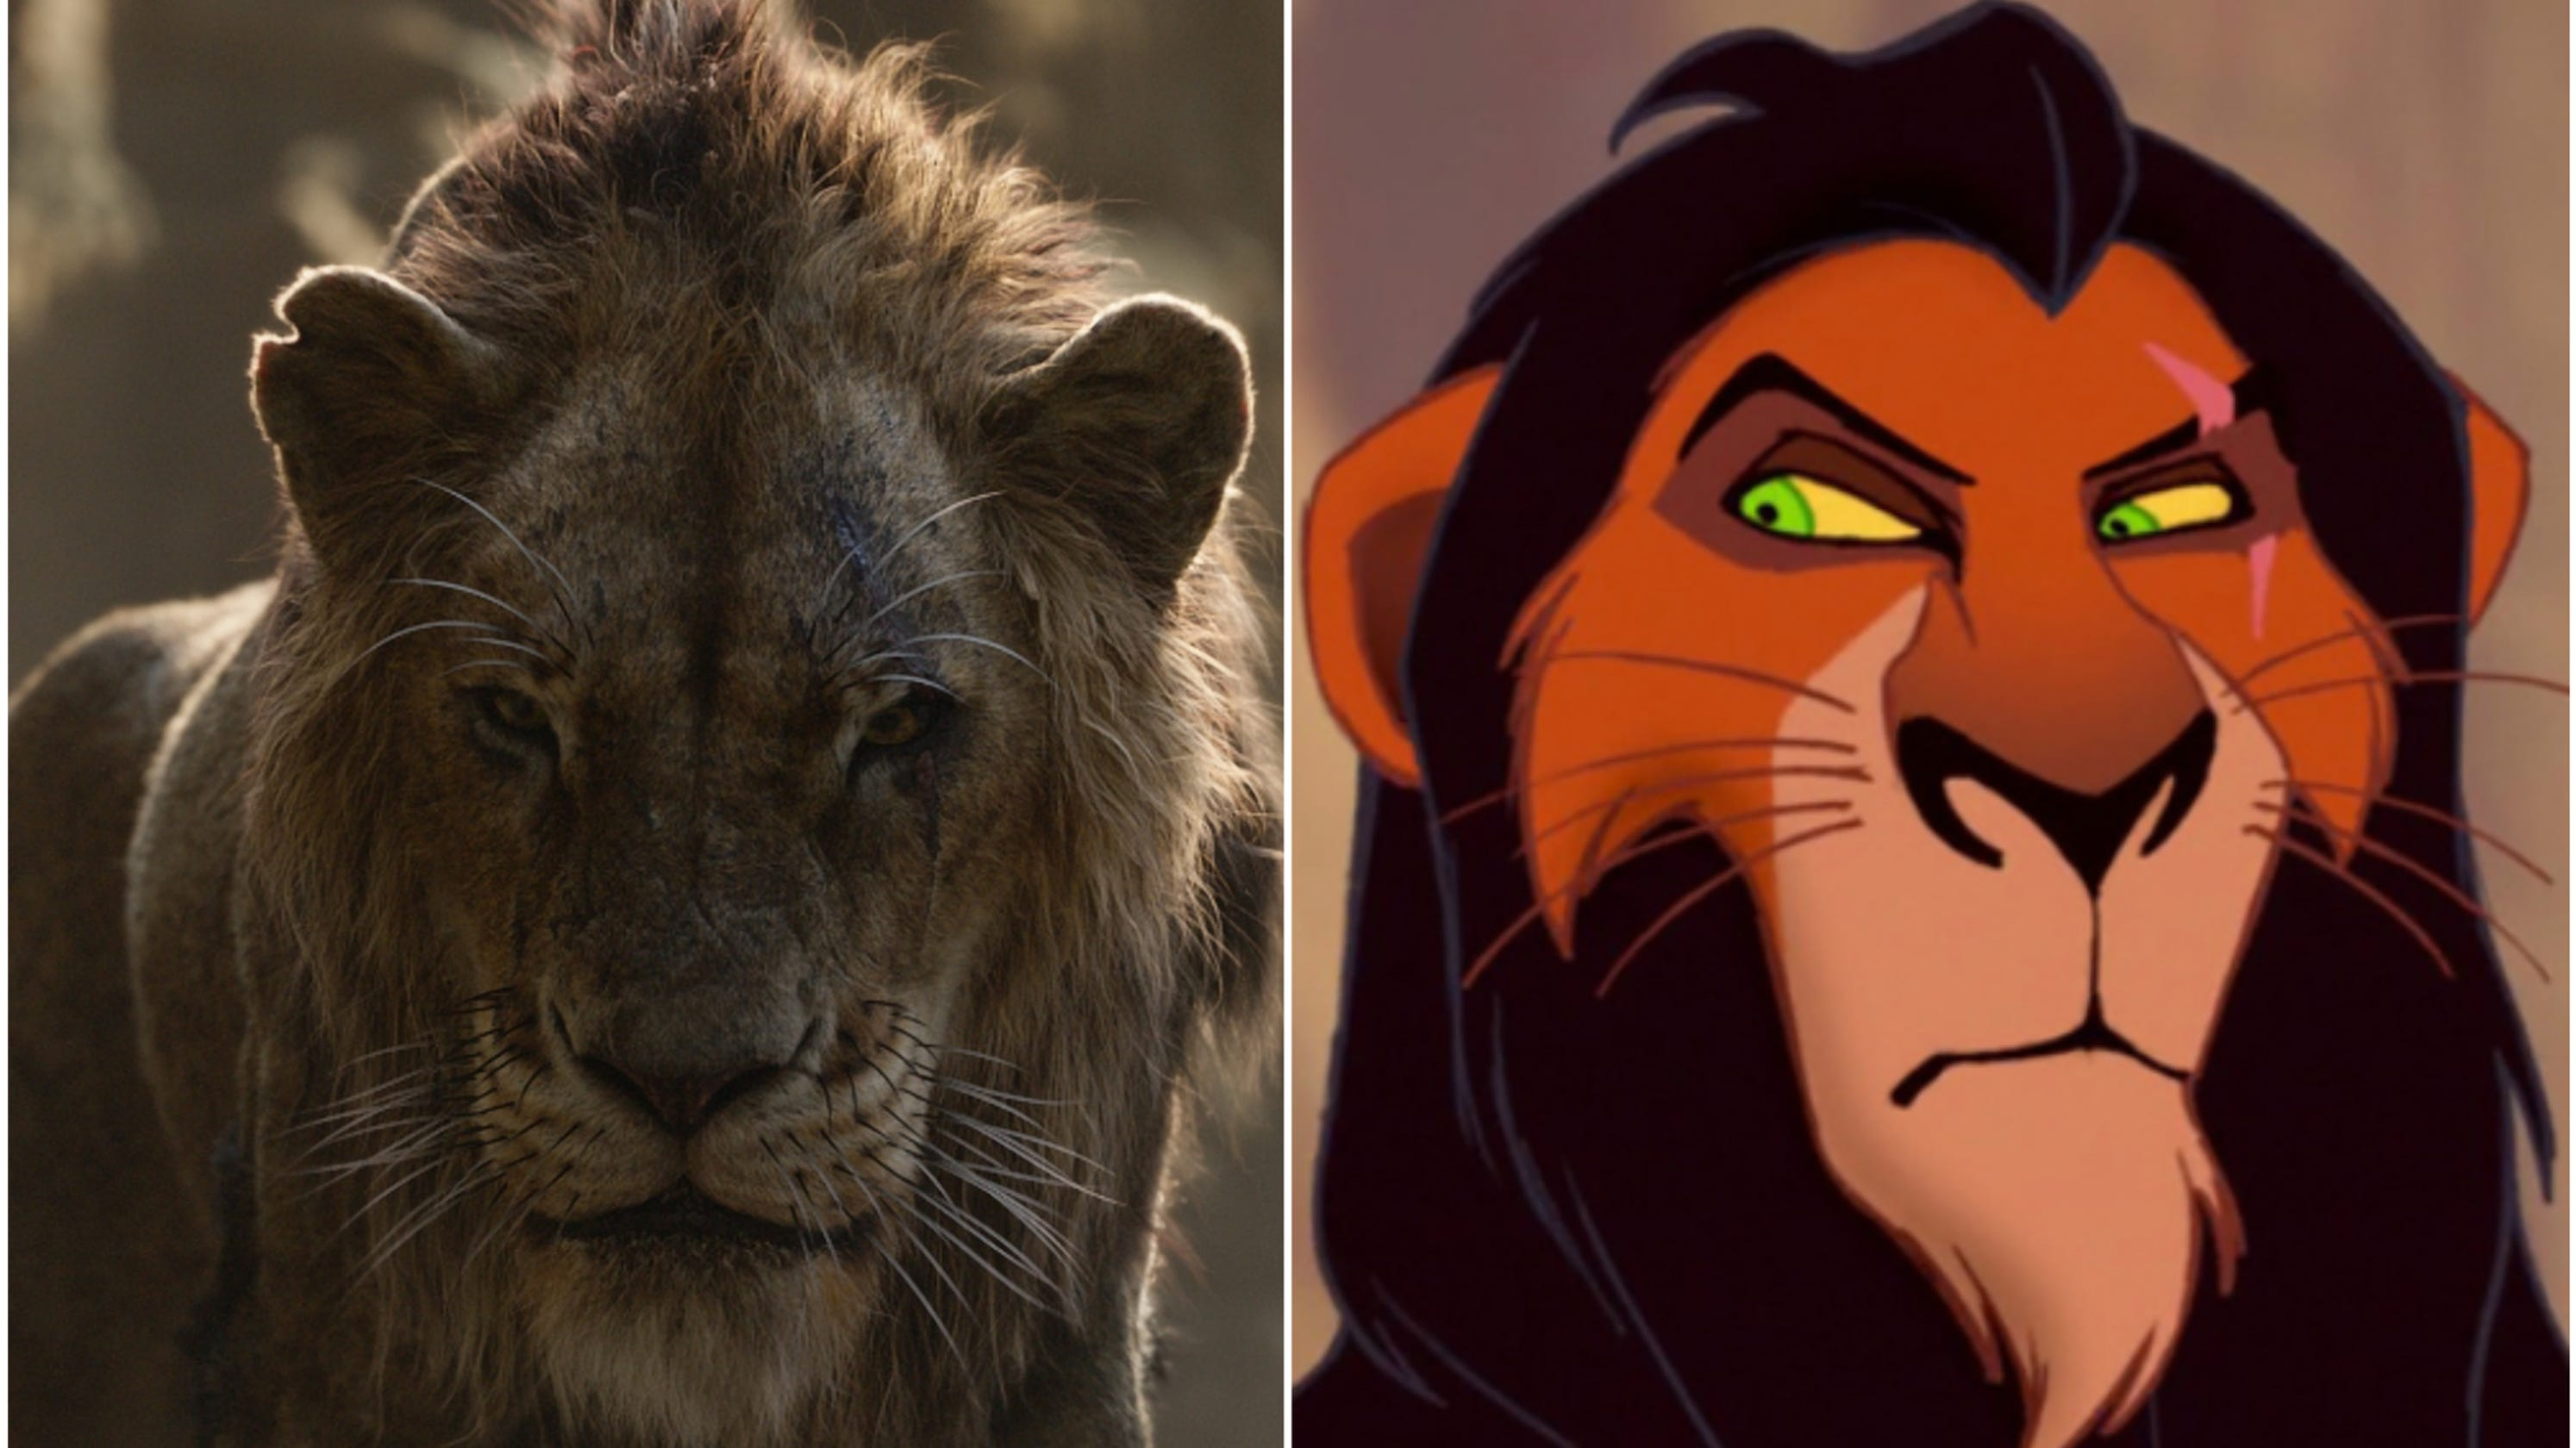 The Lion King' remake's biggest changes from the original